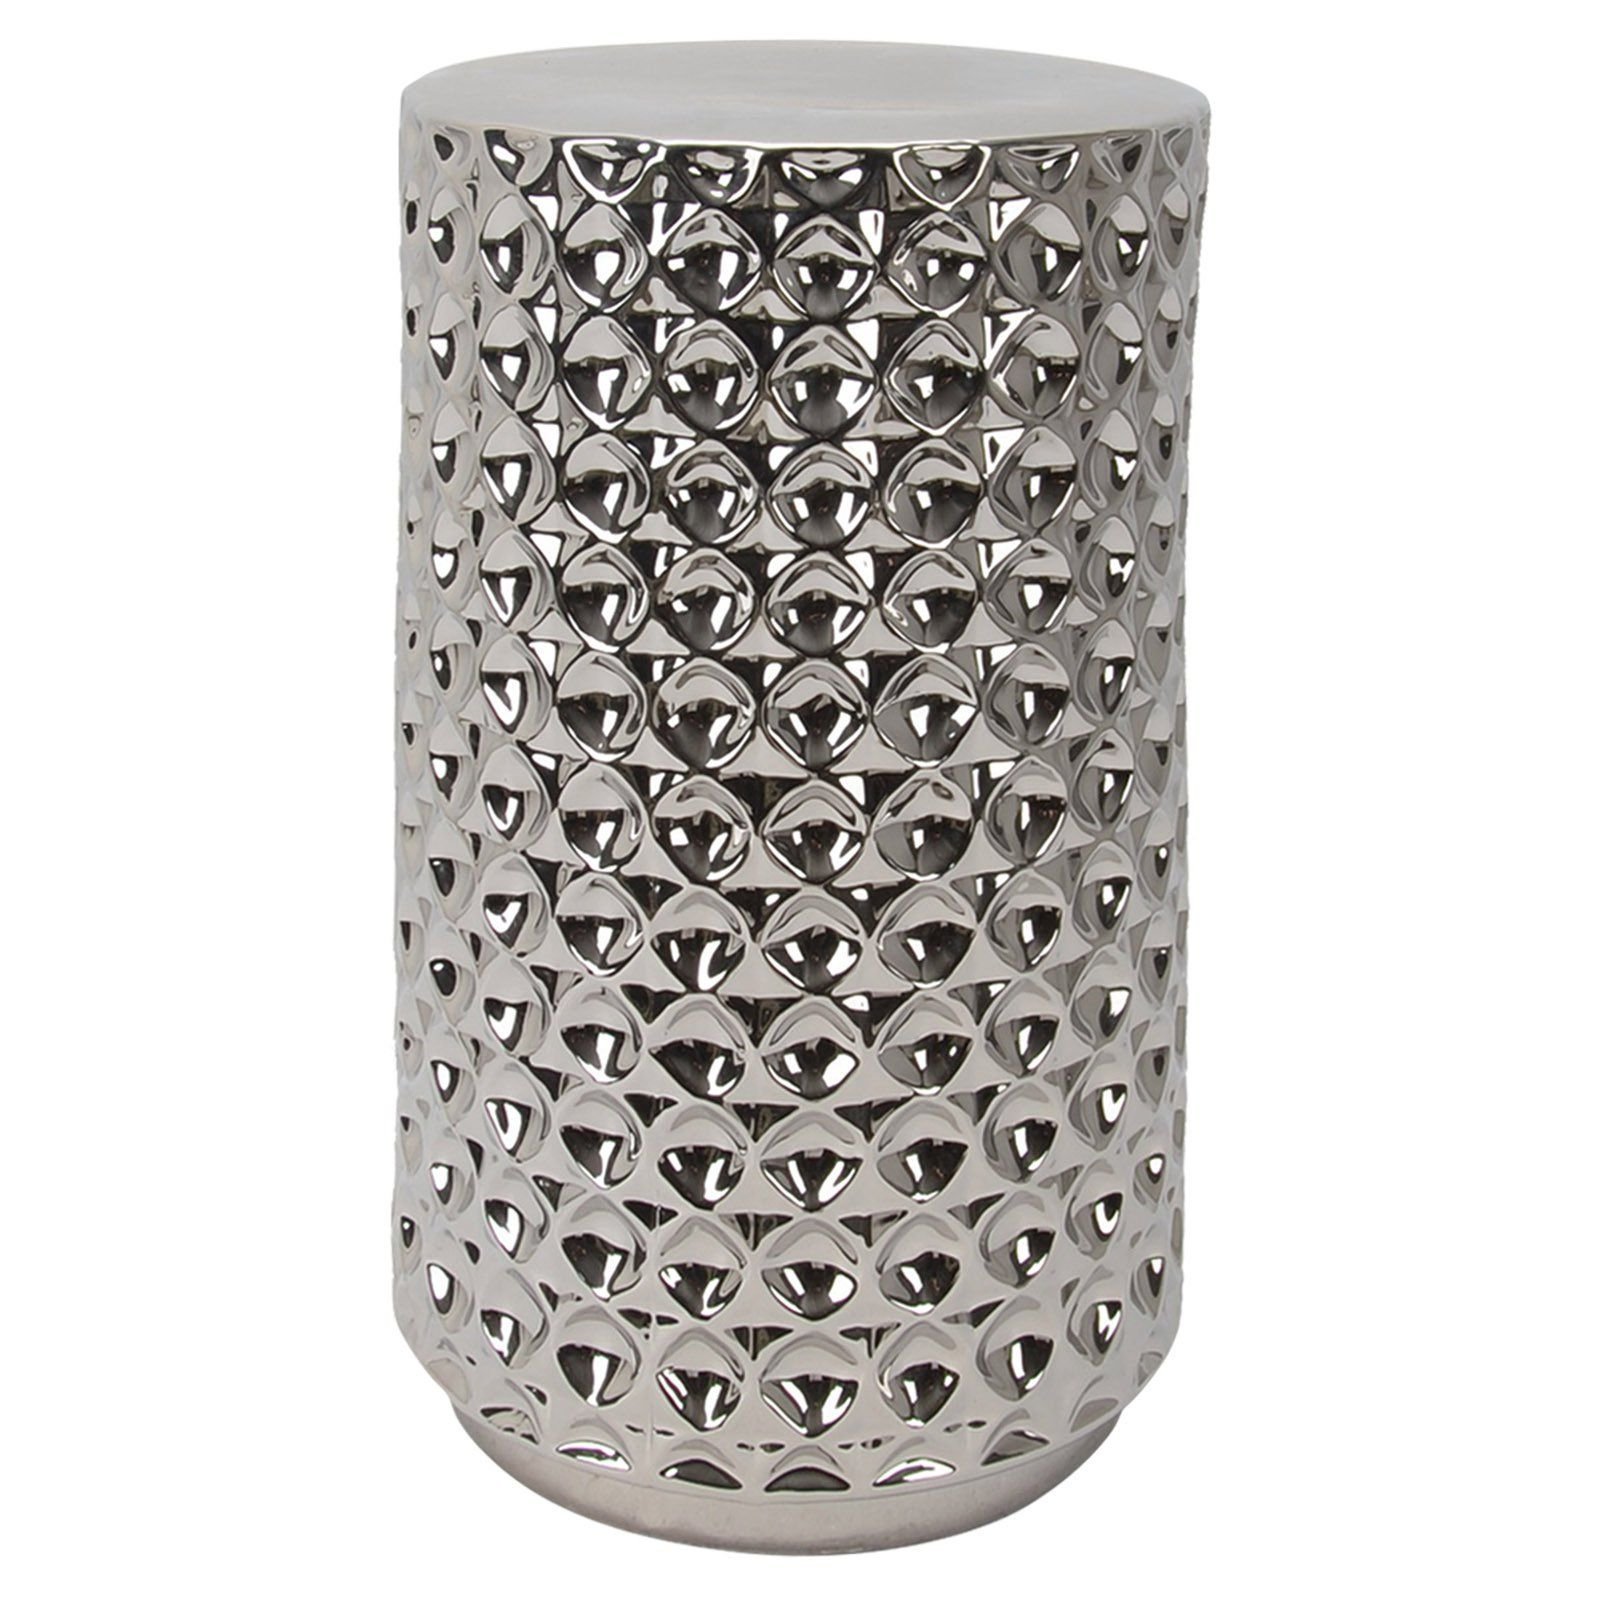 Newest Winterview Garden Stools Intended For Outdoor Harp & Finial Athens Round Garden Stool Chrome (View 15 of 30)